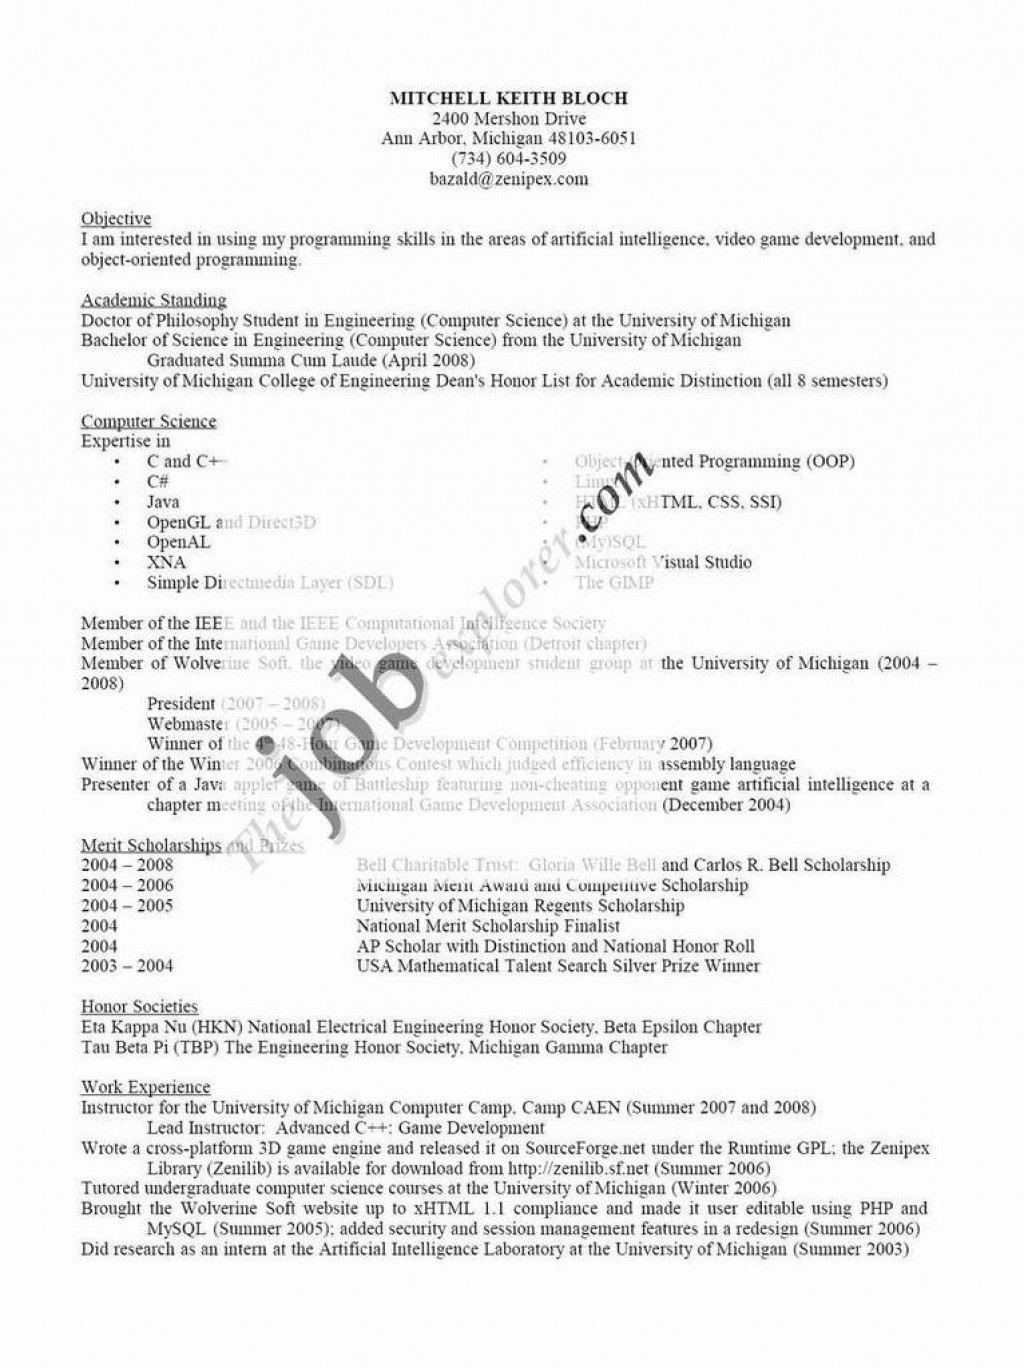 003 Buy Custom Essay Medical Assistant Resume Templates For Microsoft Word Inspirational Usa Cheap Line Service Cultureworks Sample Beautiful Writing Online College Essays Large